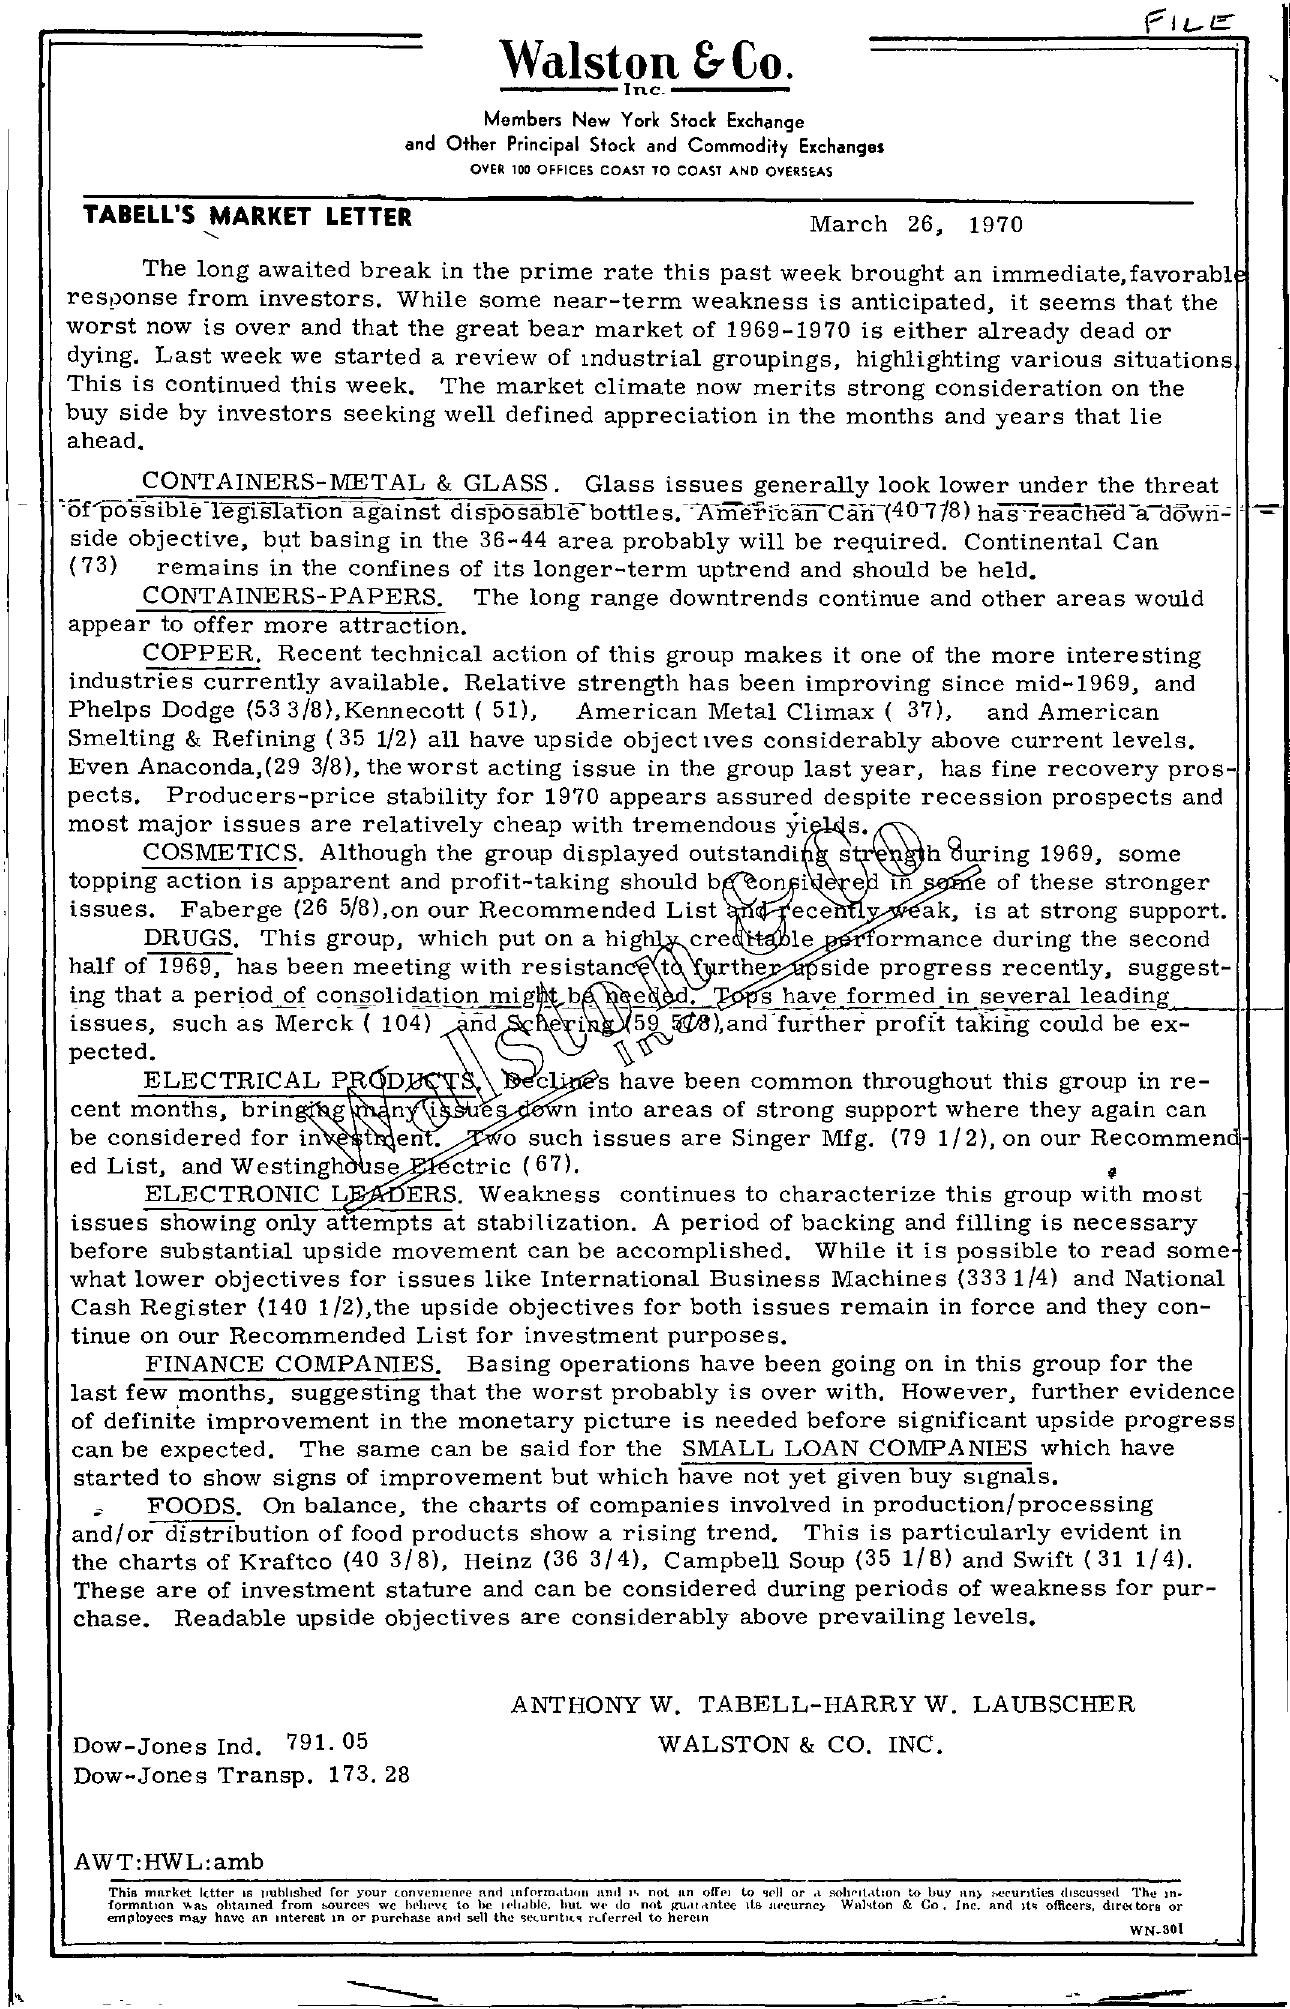 Tabell's Market Letter - March 26, 1970